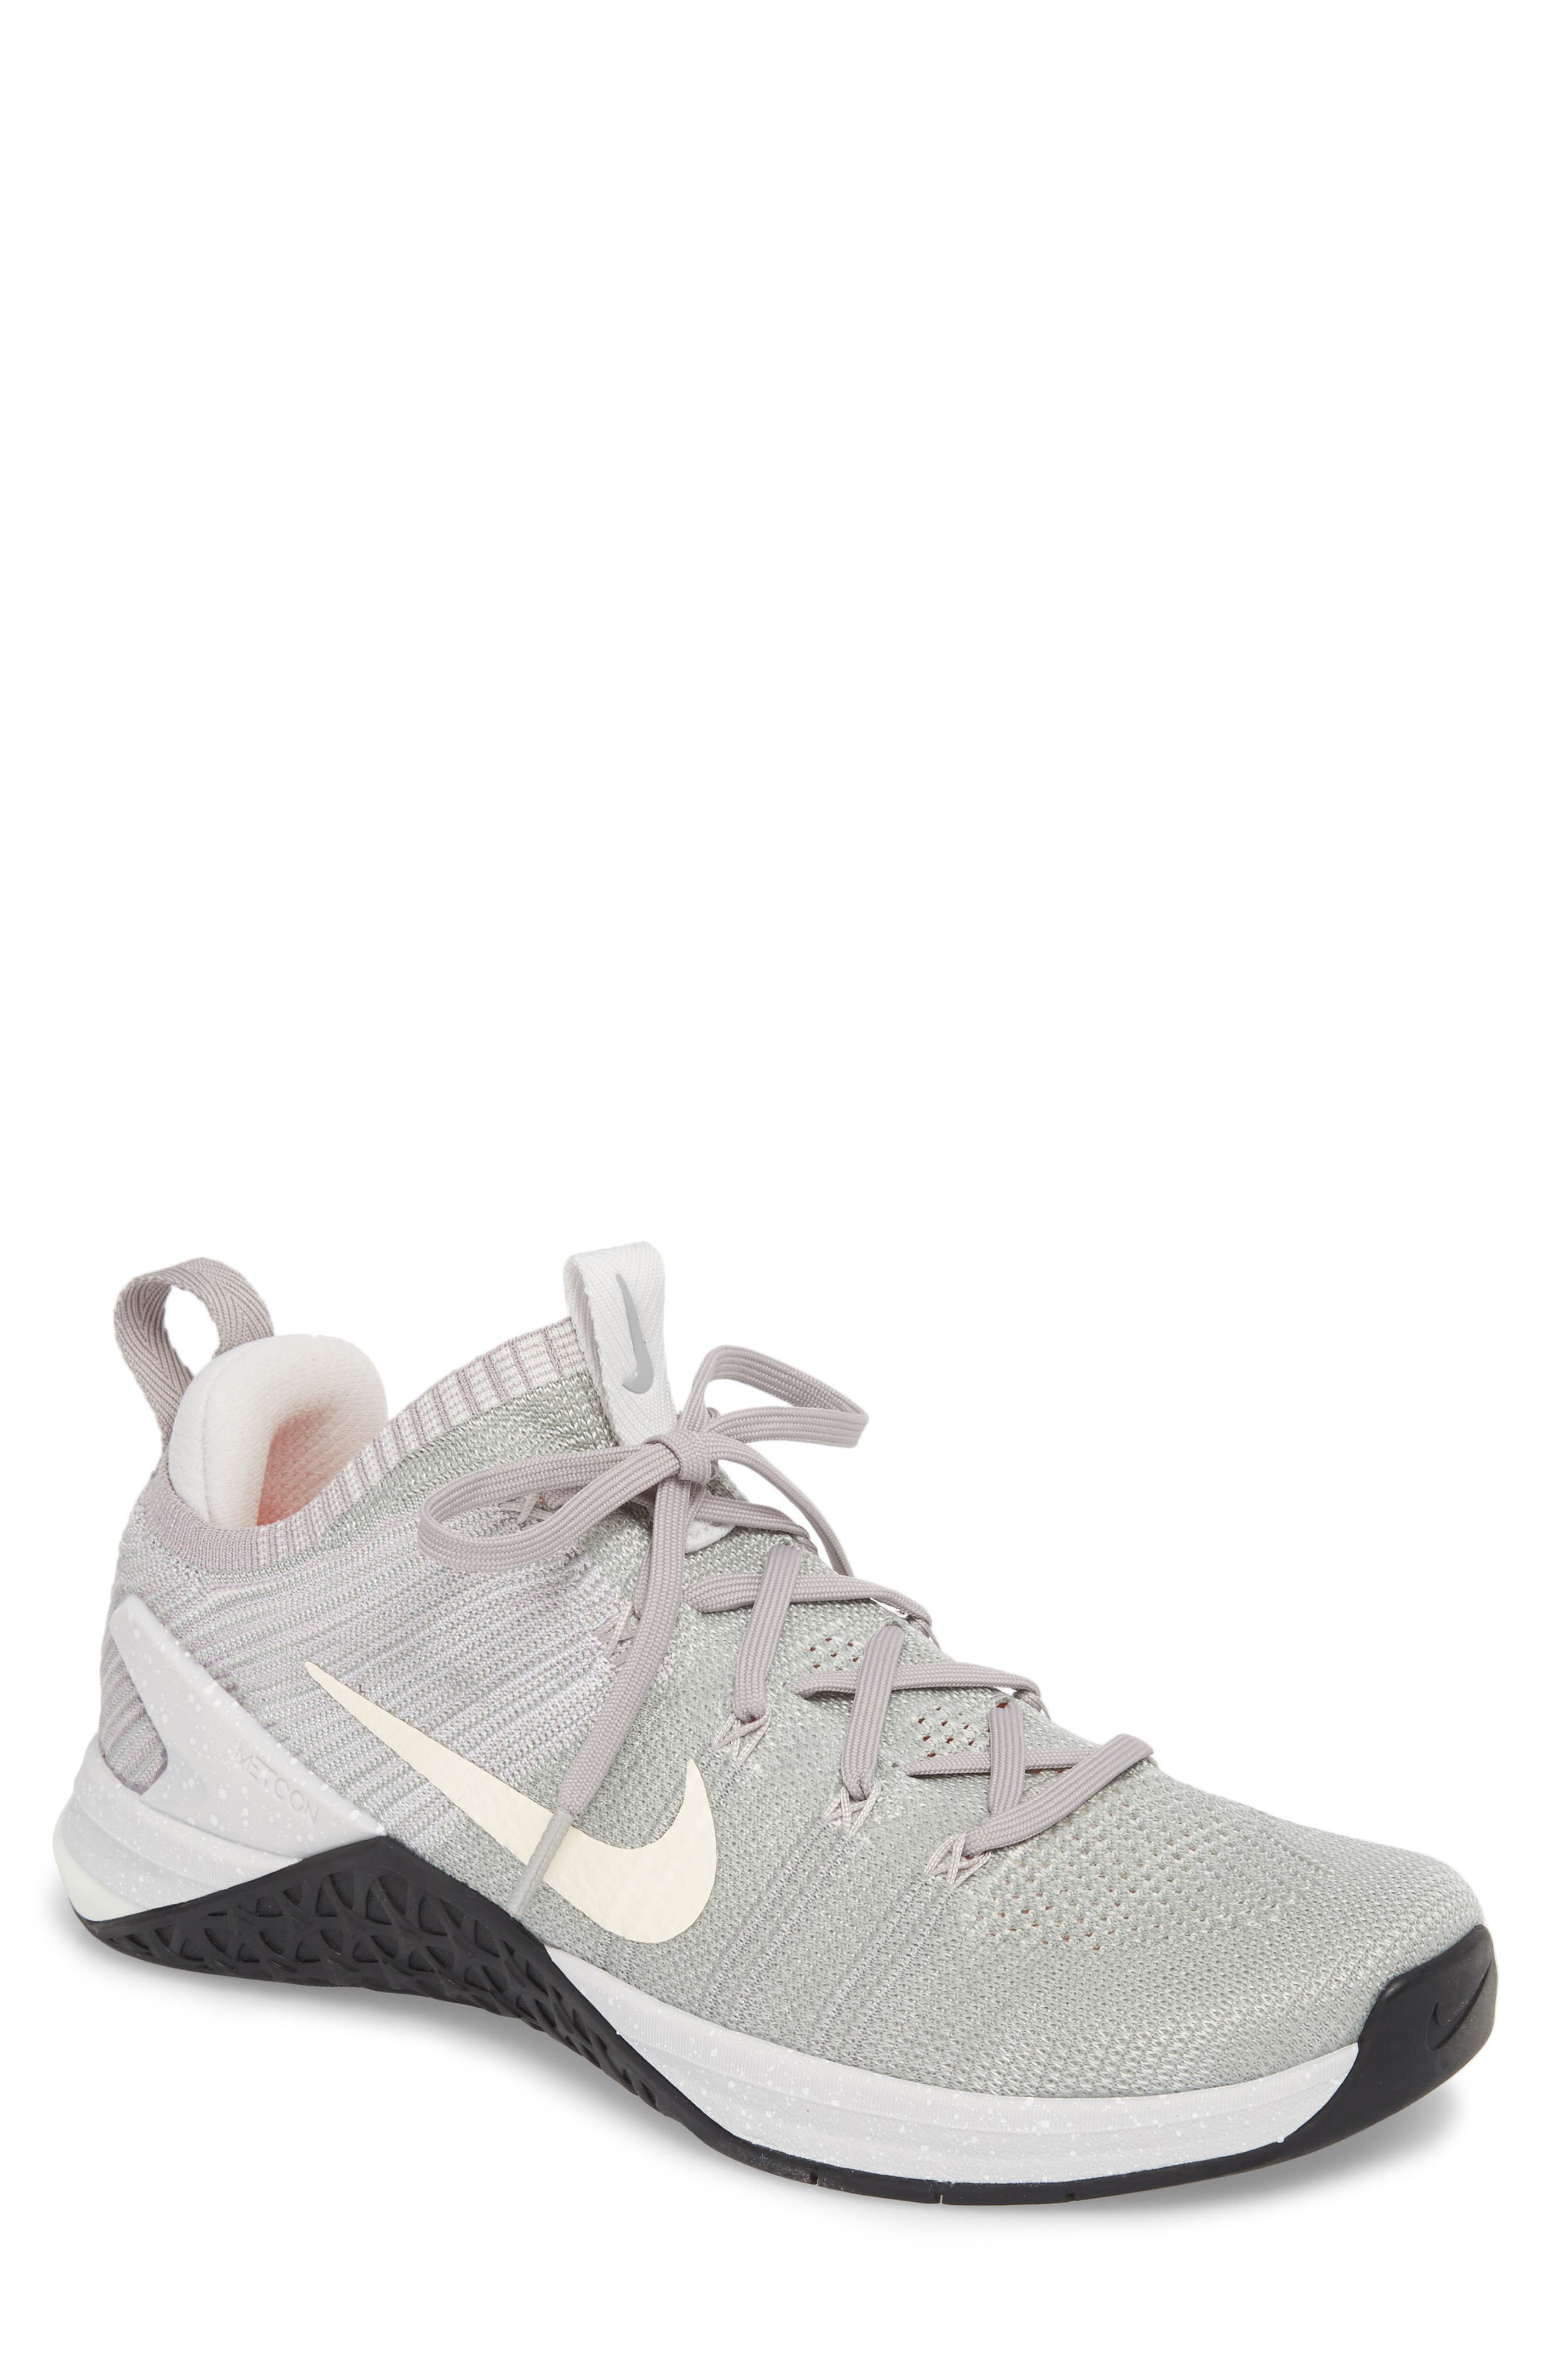 Metcon DSX Flyknit 2 Training Shoe,                         Main,                         color, MATTE SILVER/ SAIL/ GREY